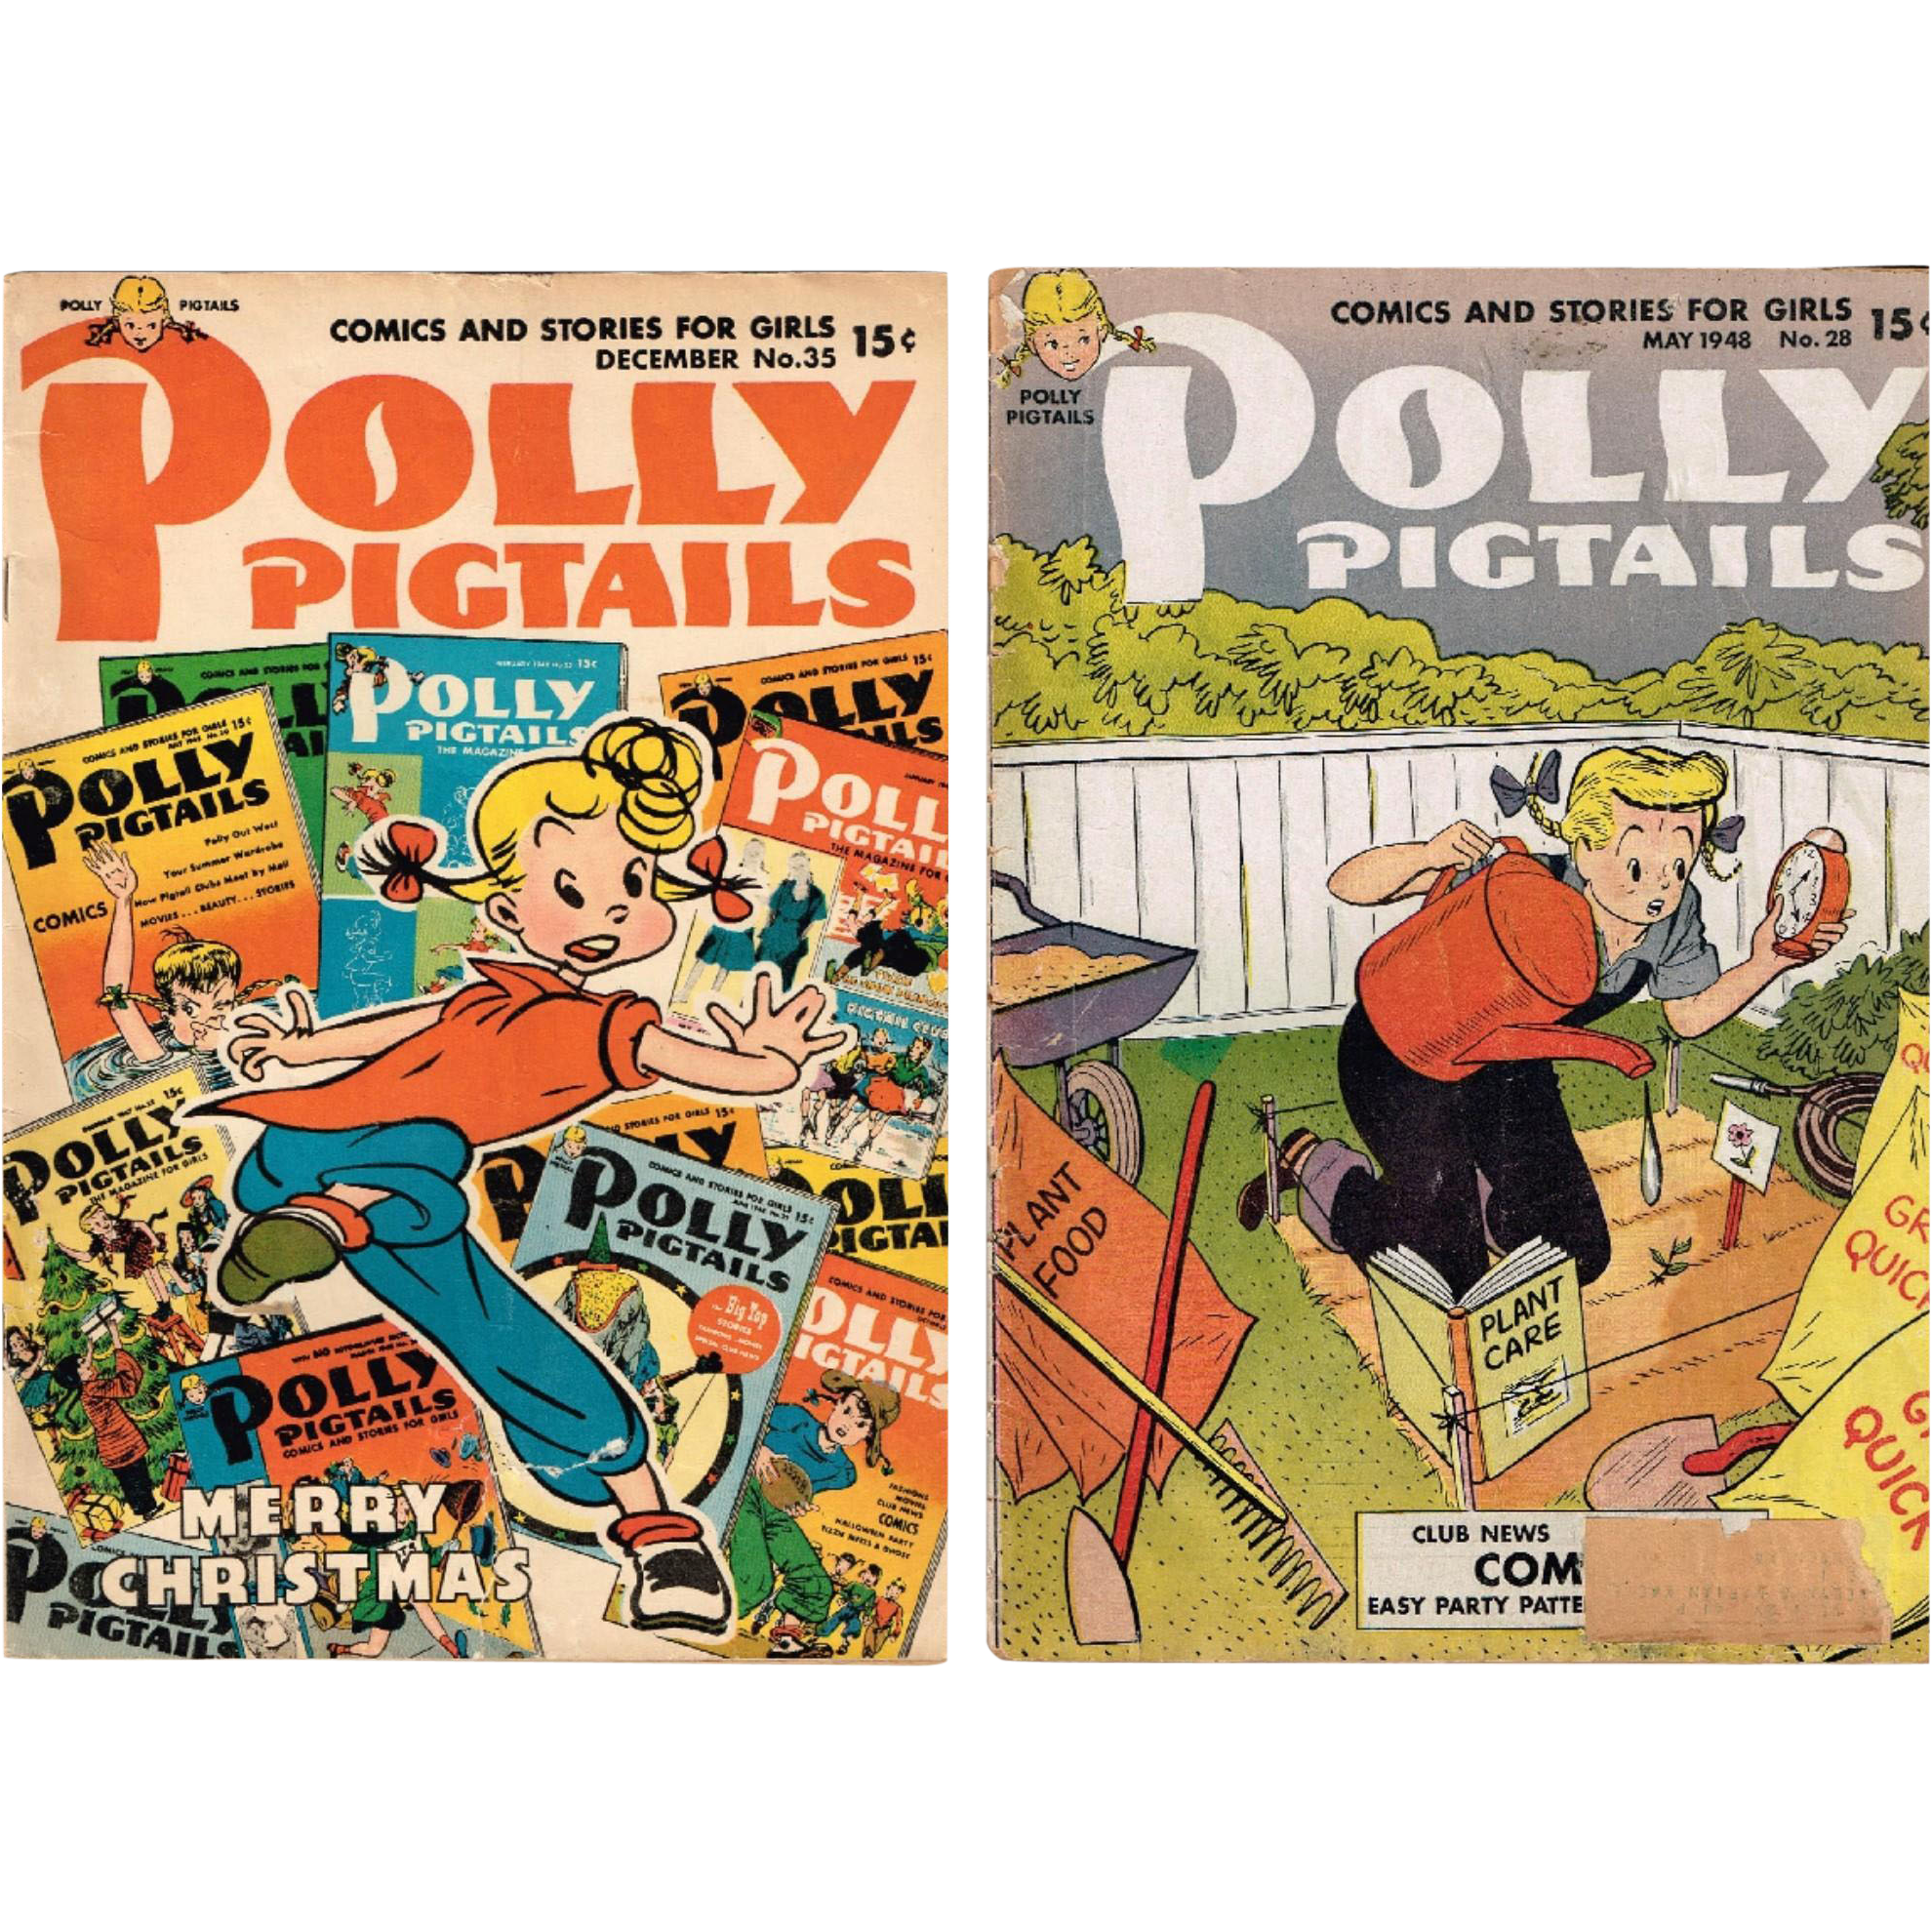 Two 1948 Polly Pigtails Comics and Stories for Girls, No. 28 and 35